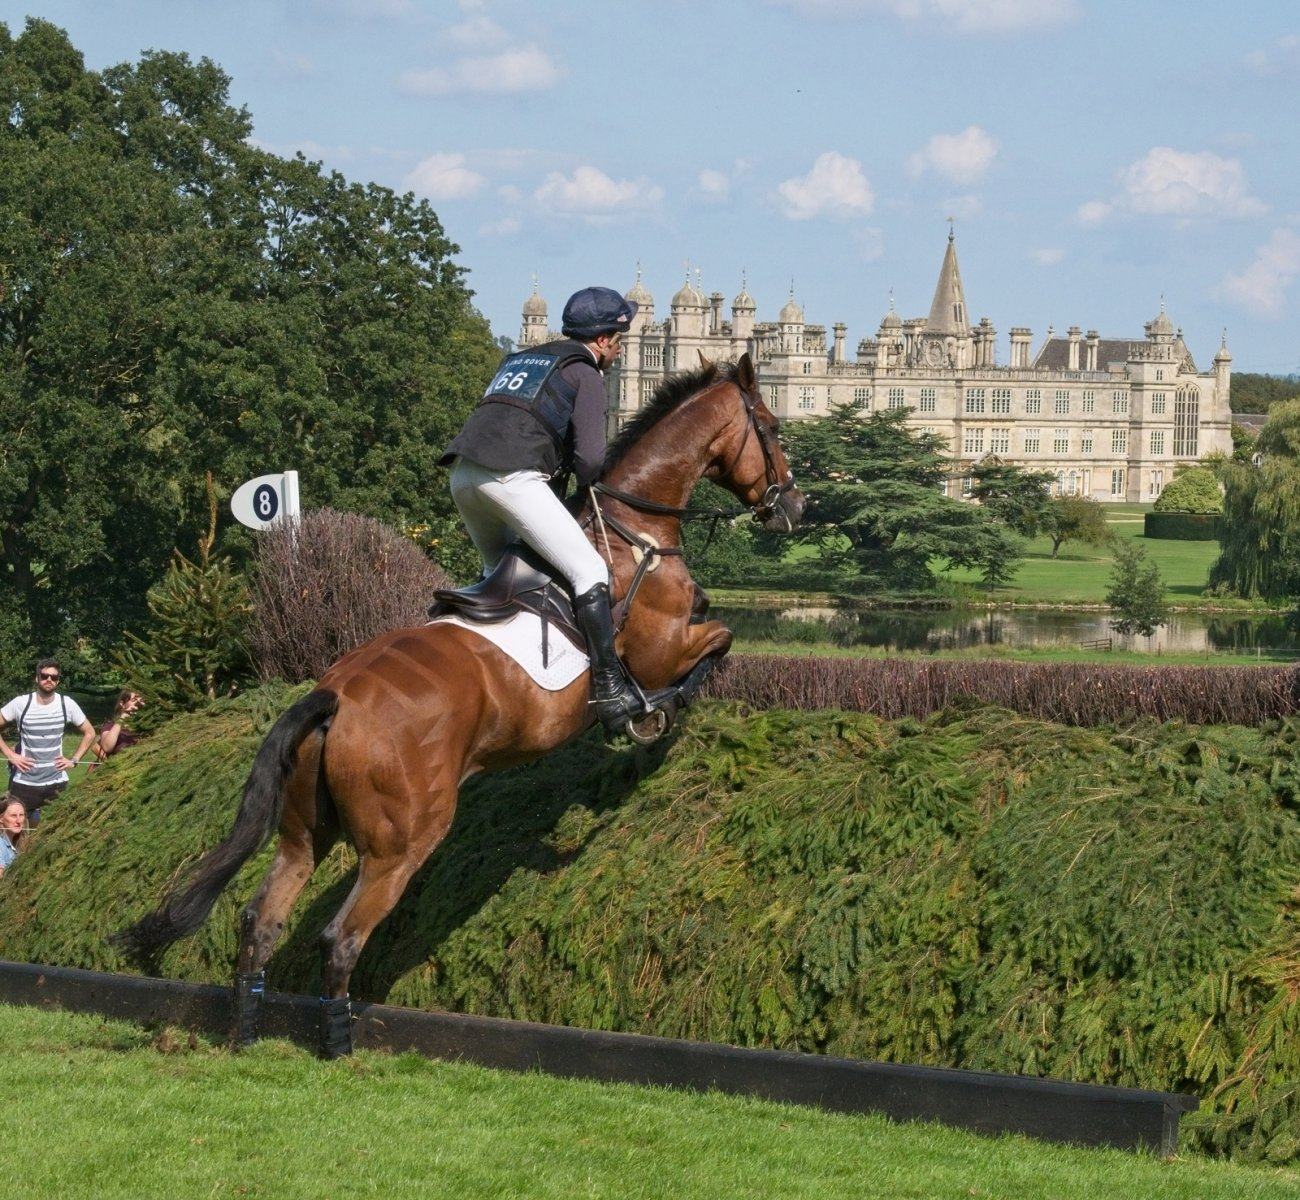 20170902_Burghley-Cross-Country_3596-copy.jpg